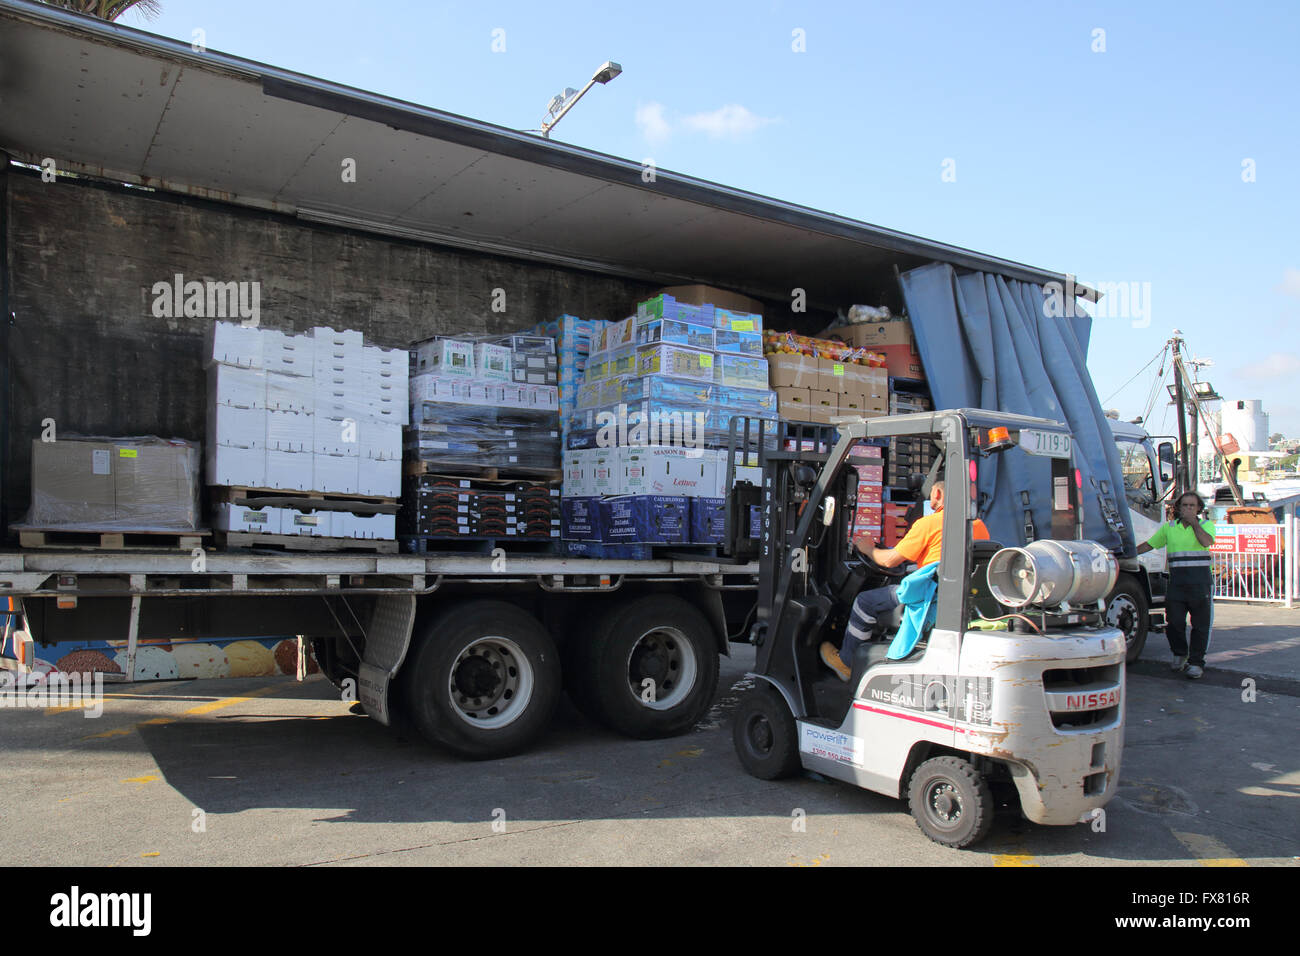 unloading a truck at sydney fish market australia Stock Photo